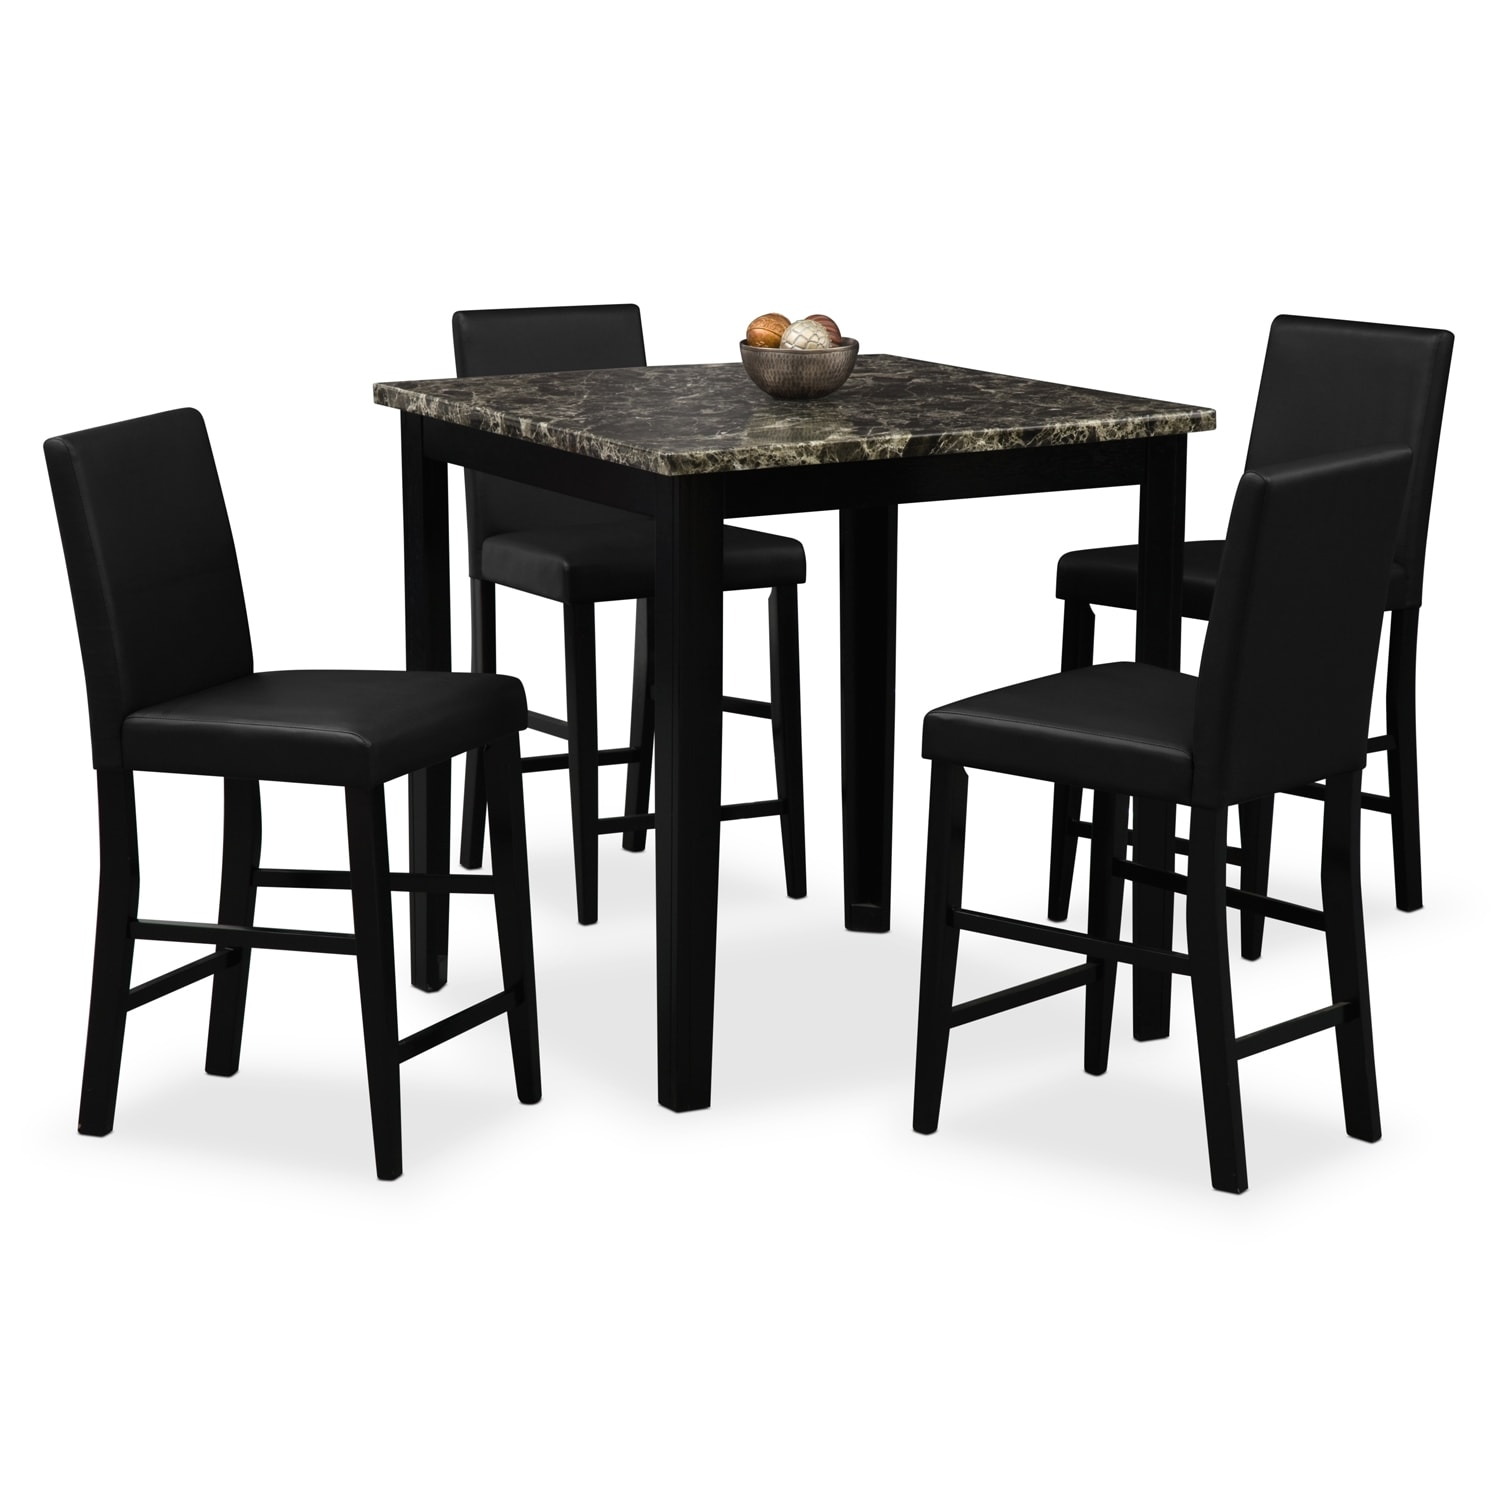 Shadow counter height table and 4 chairs black value for Black dining table